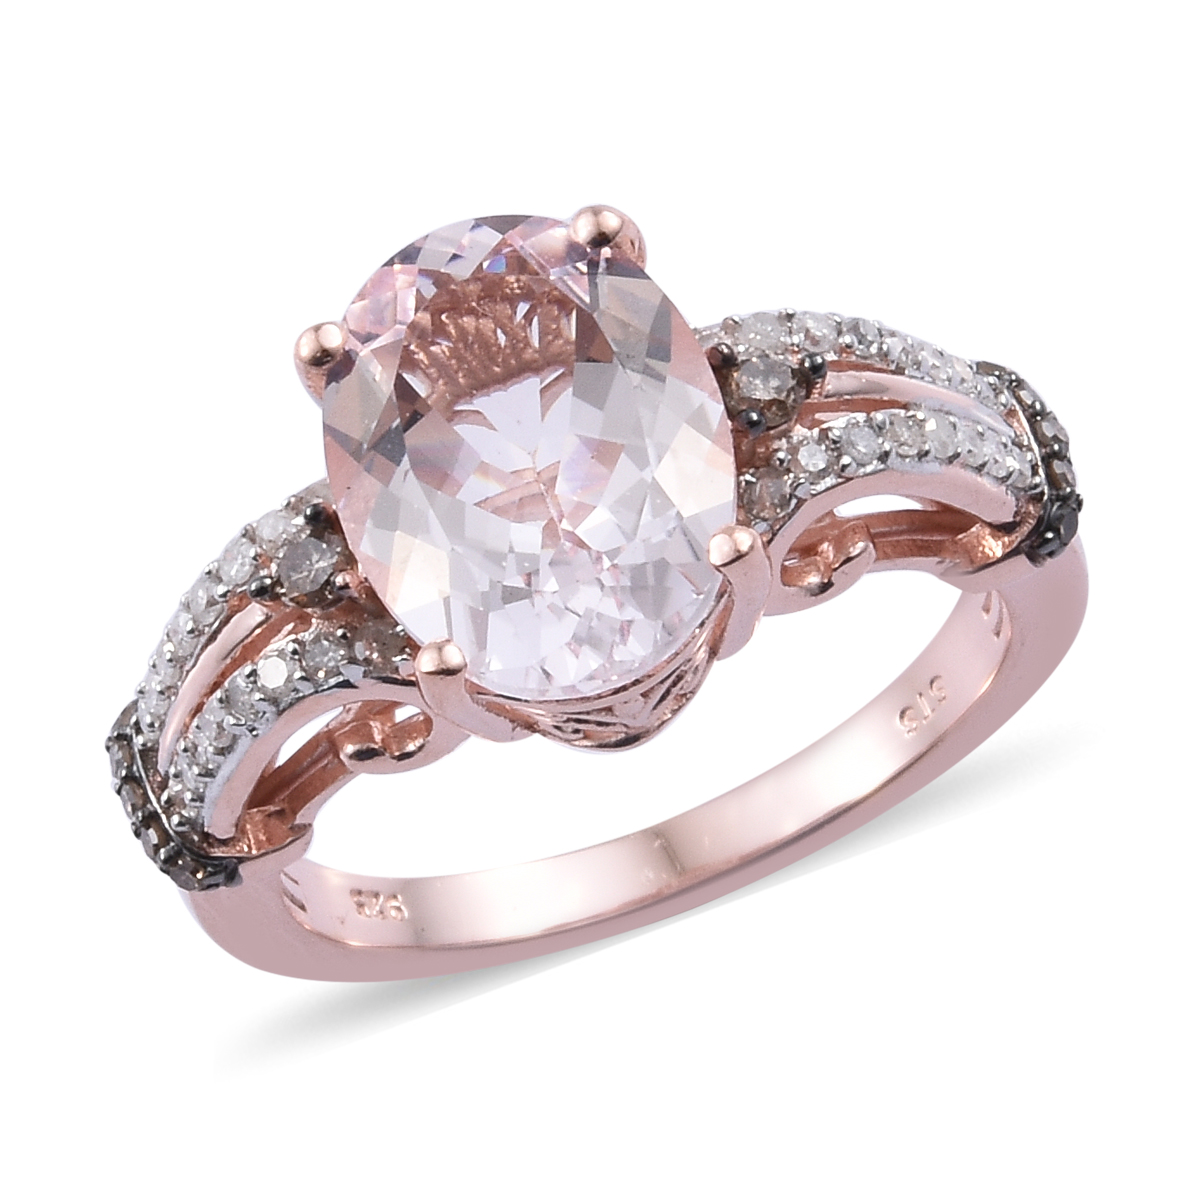 93c81b66095e8 Details about Pink Morganite Diamond Engagement Ring Silver Vermeil Rose  Gold Size 10 Ct 4.85